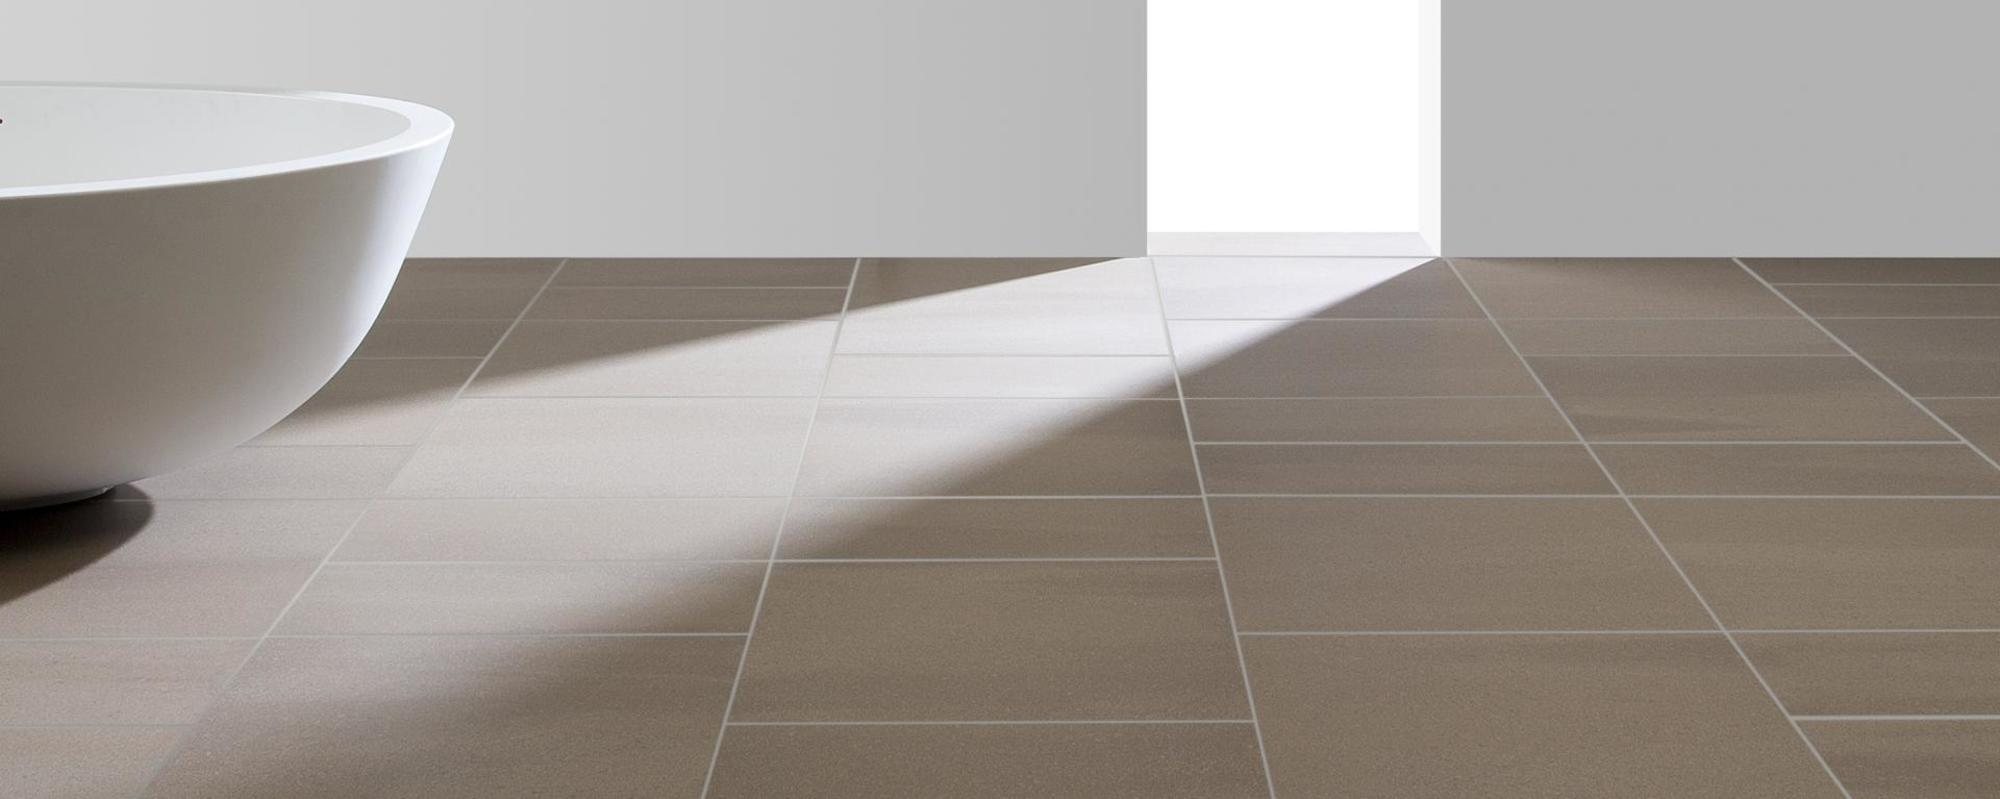 Royal MOSA tiles Solids 5124V earth grey